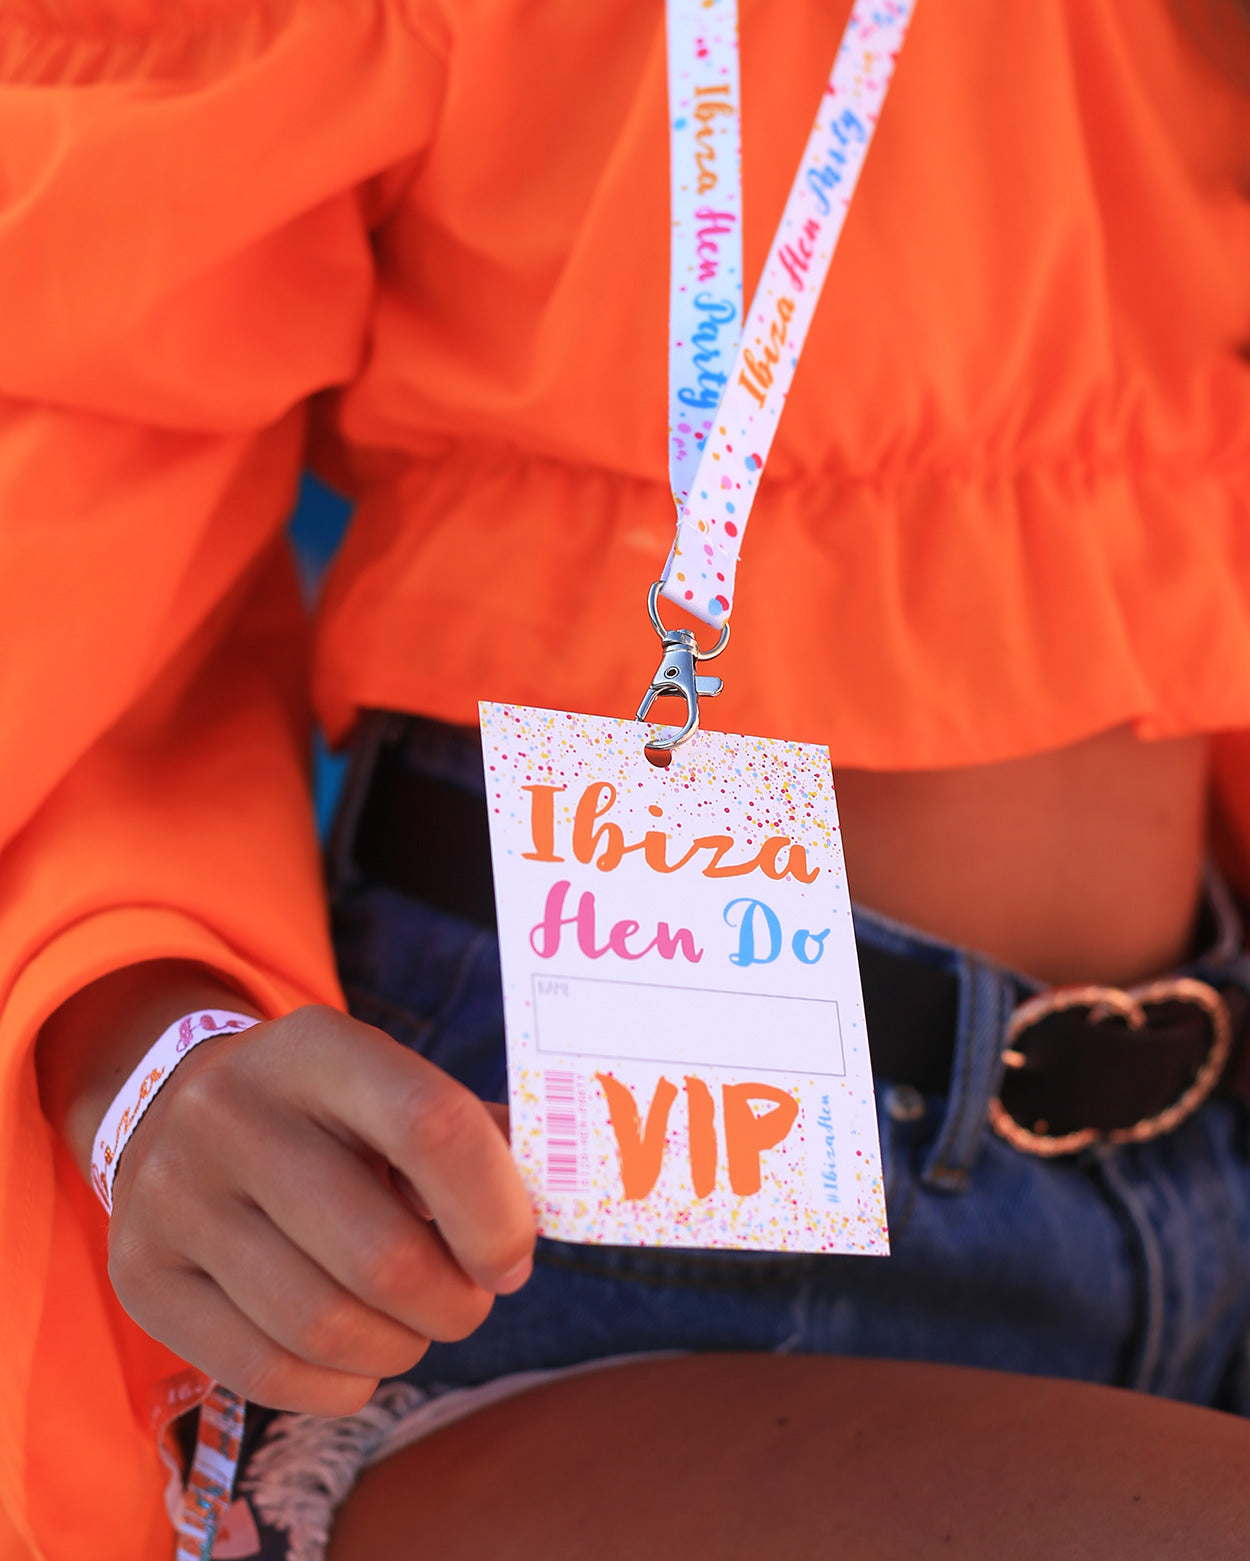 ibiza hen party lanyard vip pass favours accessories ideas